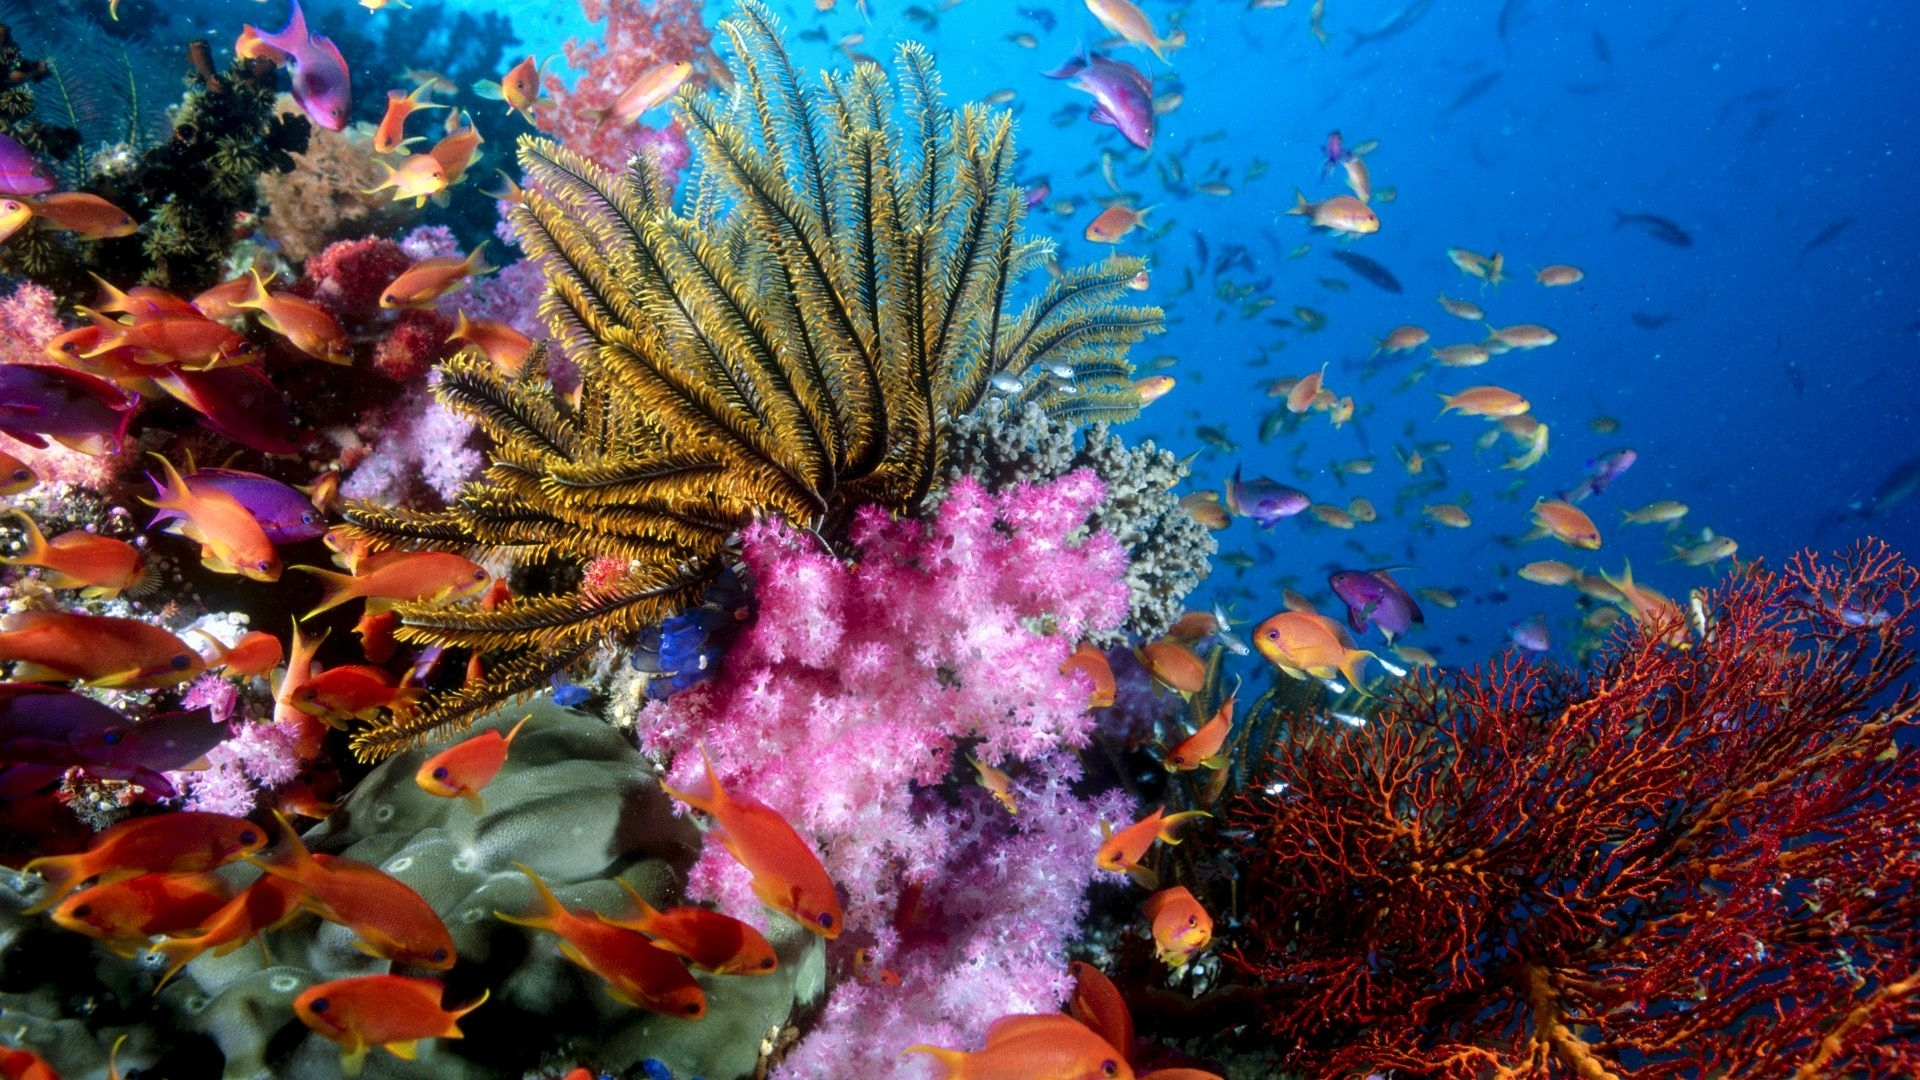 under sea life desktop background hd 1920x1200 | deskbg | sea